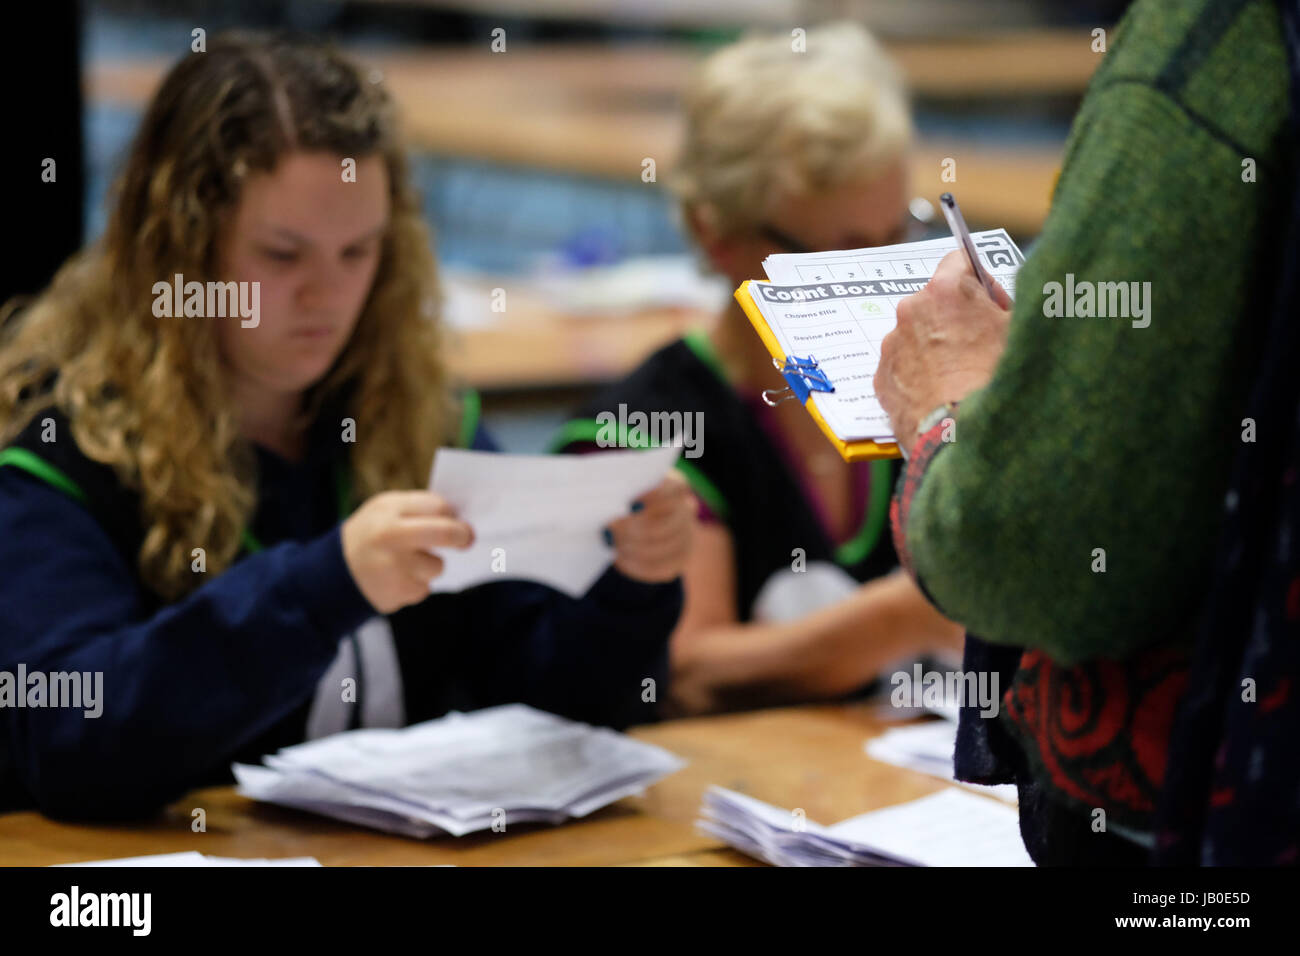 Hereford, Herefordshire, UK - Thursday 8th June 2017 - Party teller workers keep an eye on the counting process - Stock Image